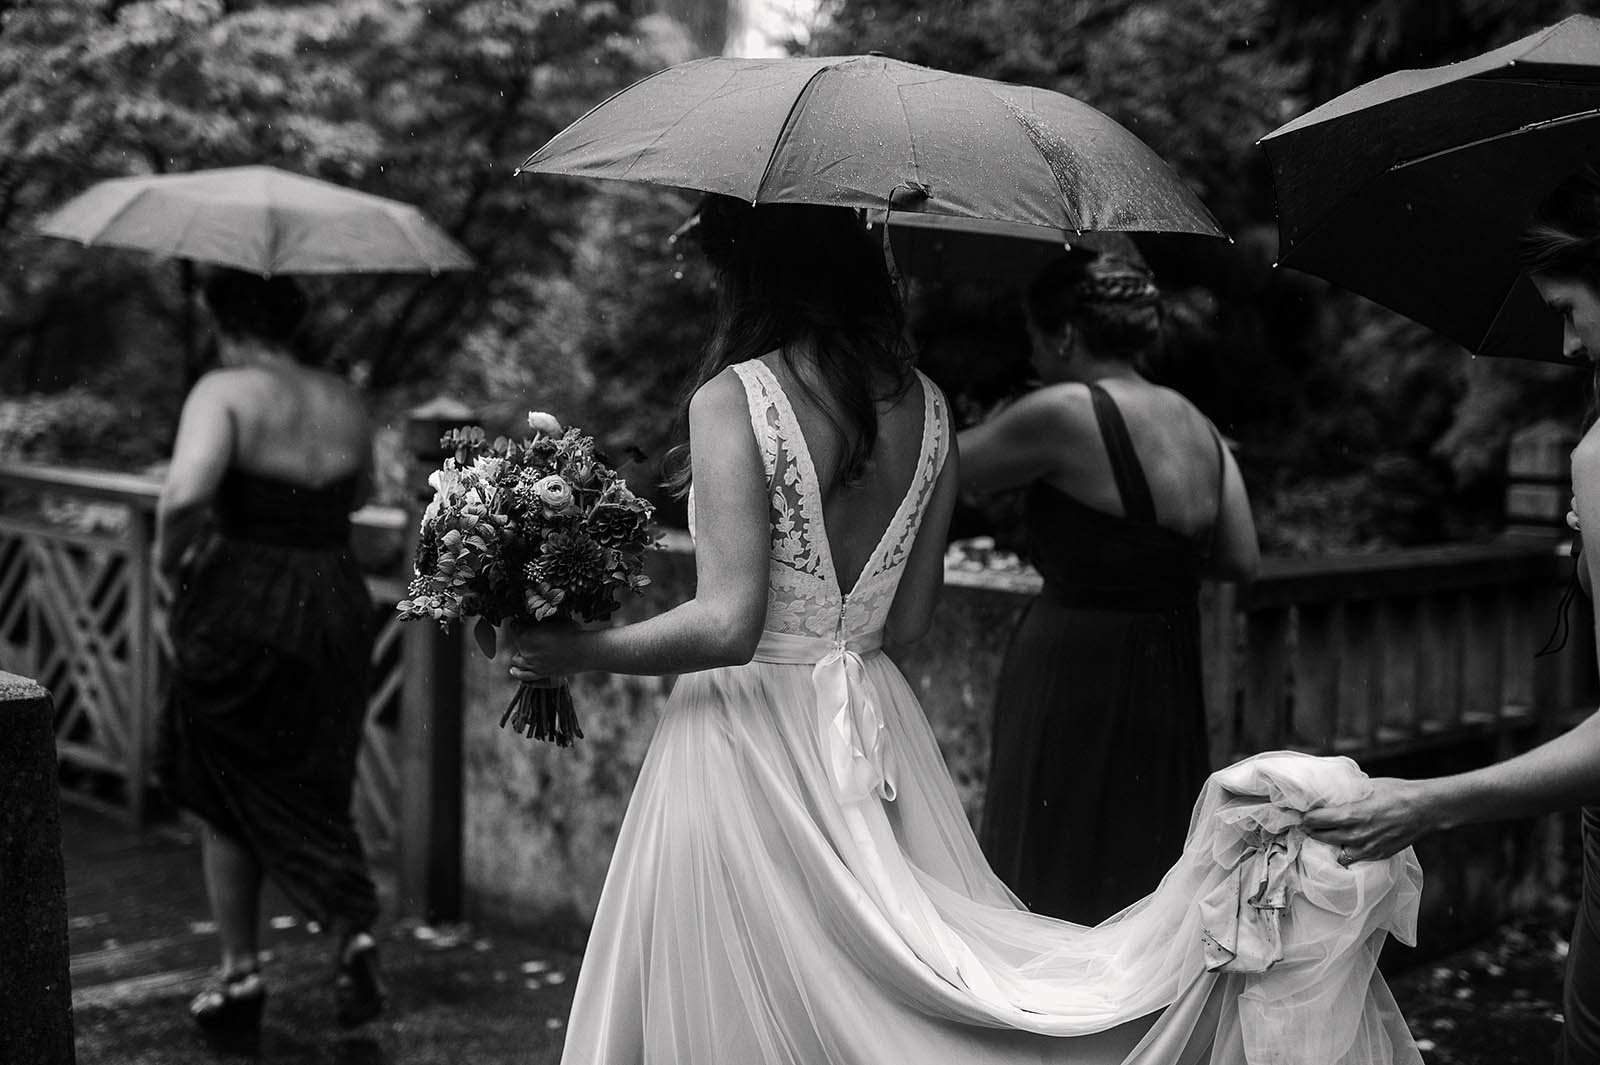 Mother of Bride holding dress during rainy ceremony at Crystal Springs Rhododendron Garden